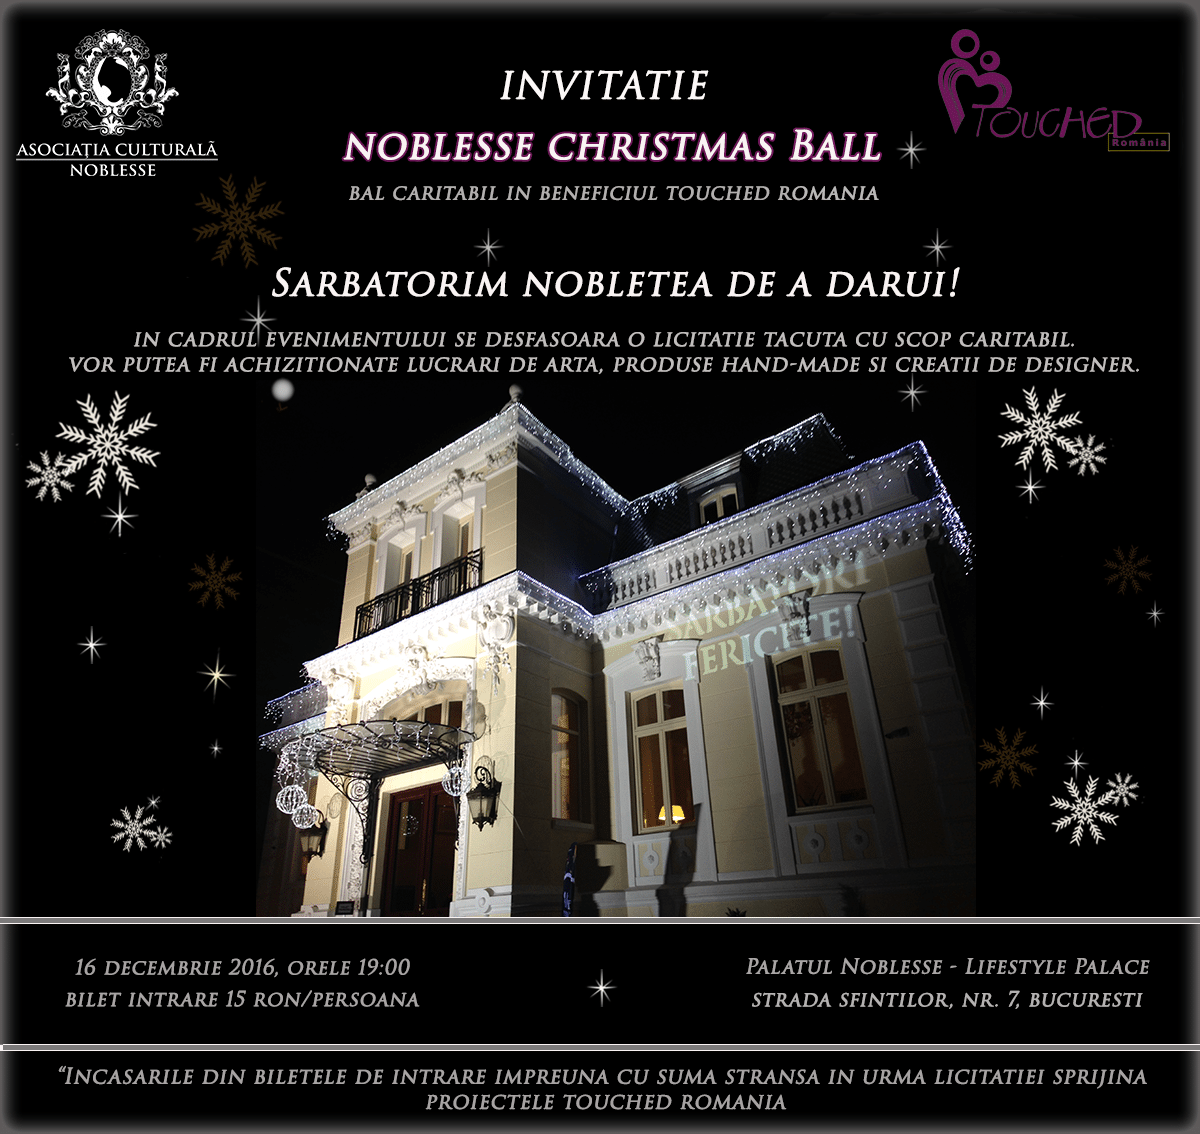 Invitatie Noblesse Christmas Ball